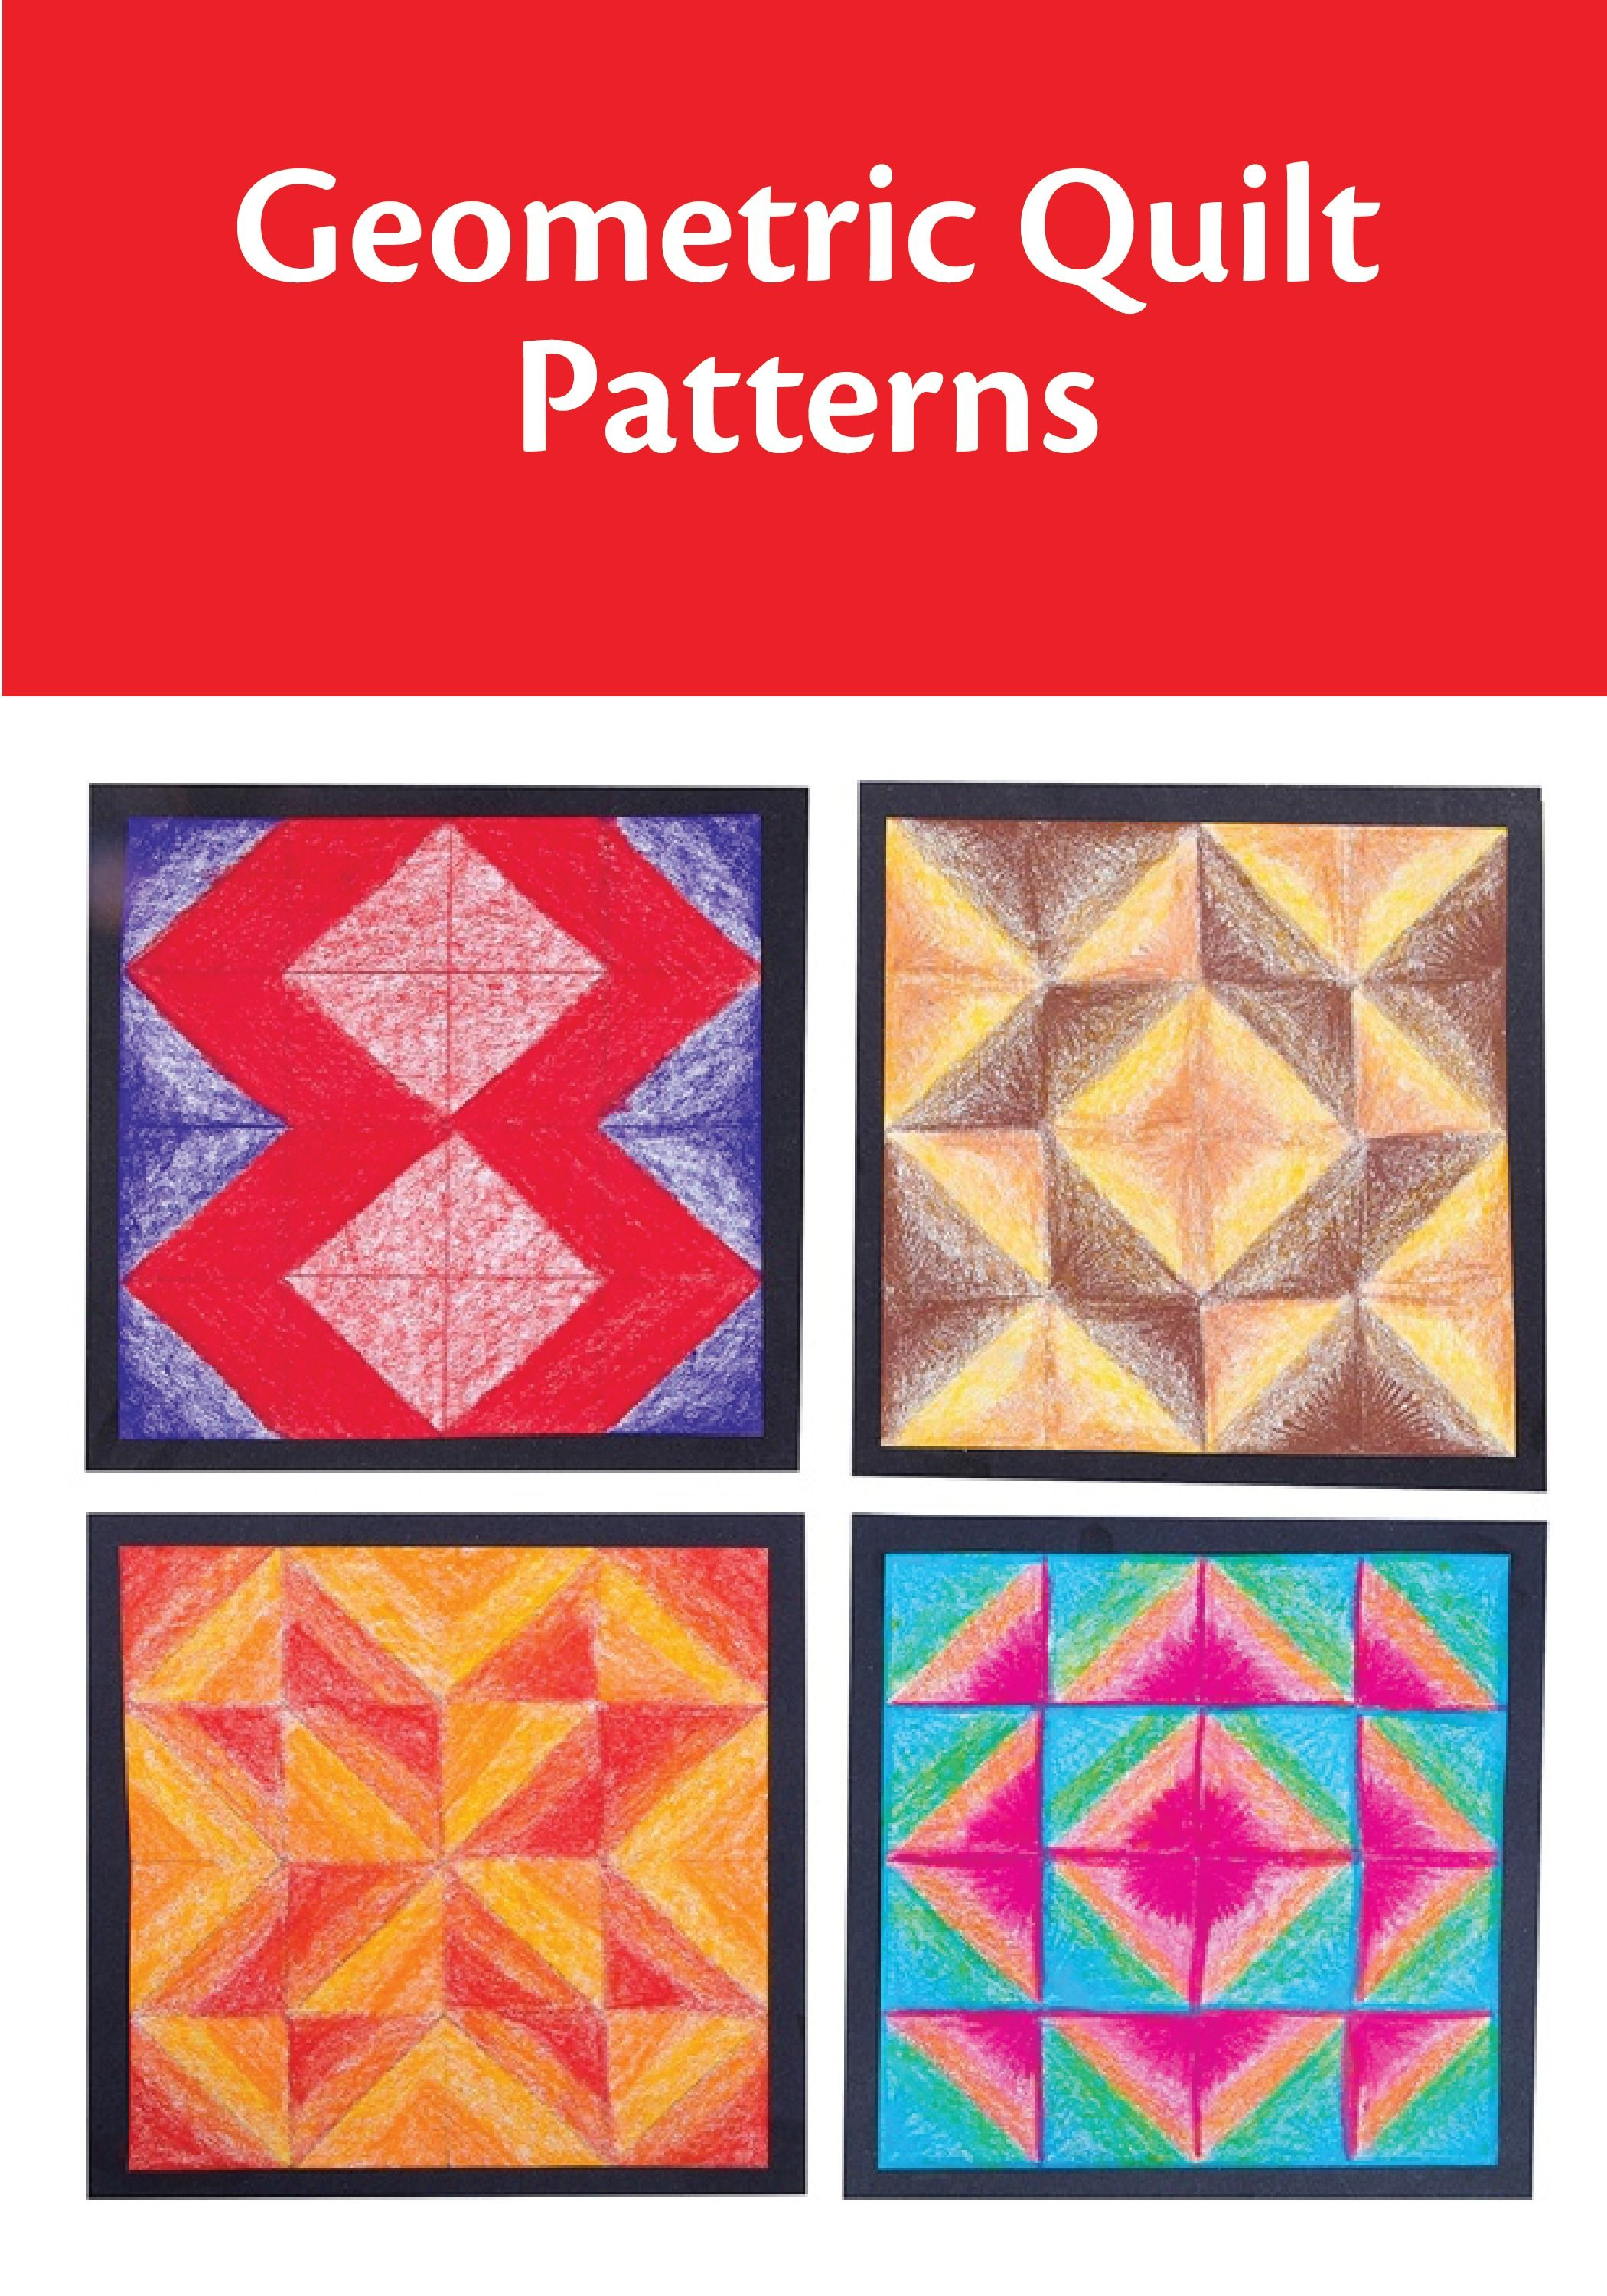 Your Students Can Build Quilt Blocks Out Of Geometric Shapes And Patterns While Learning The